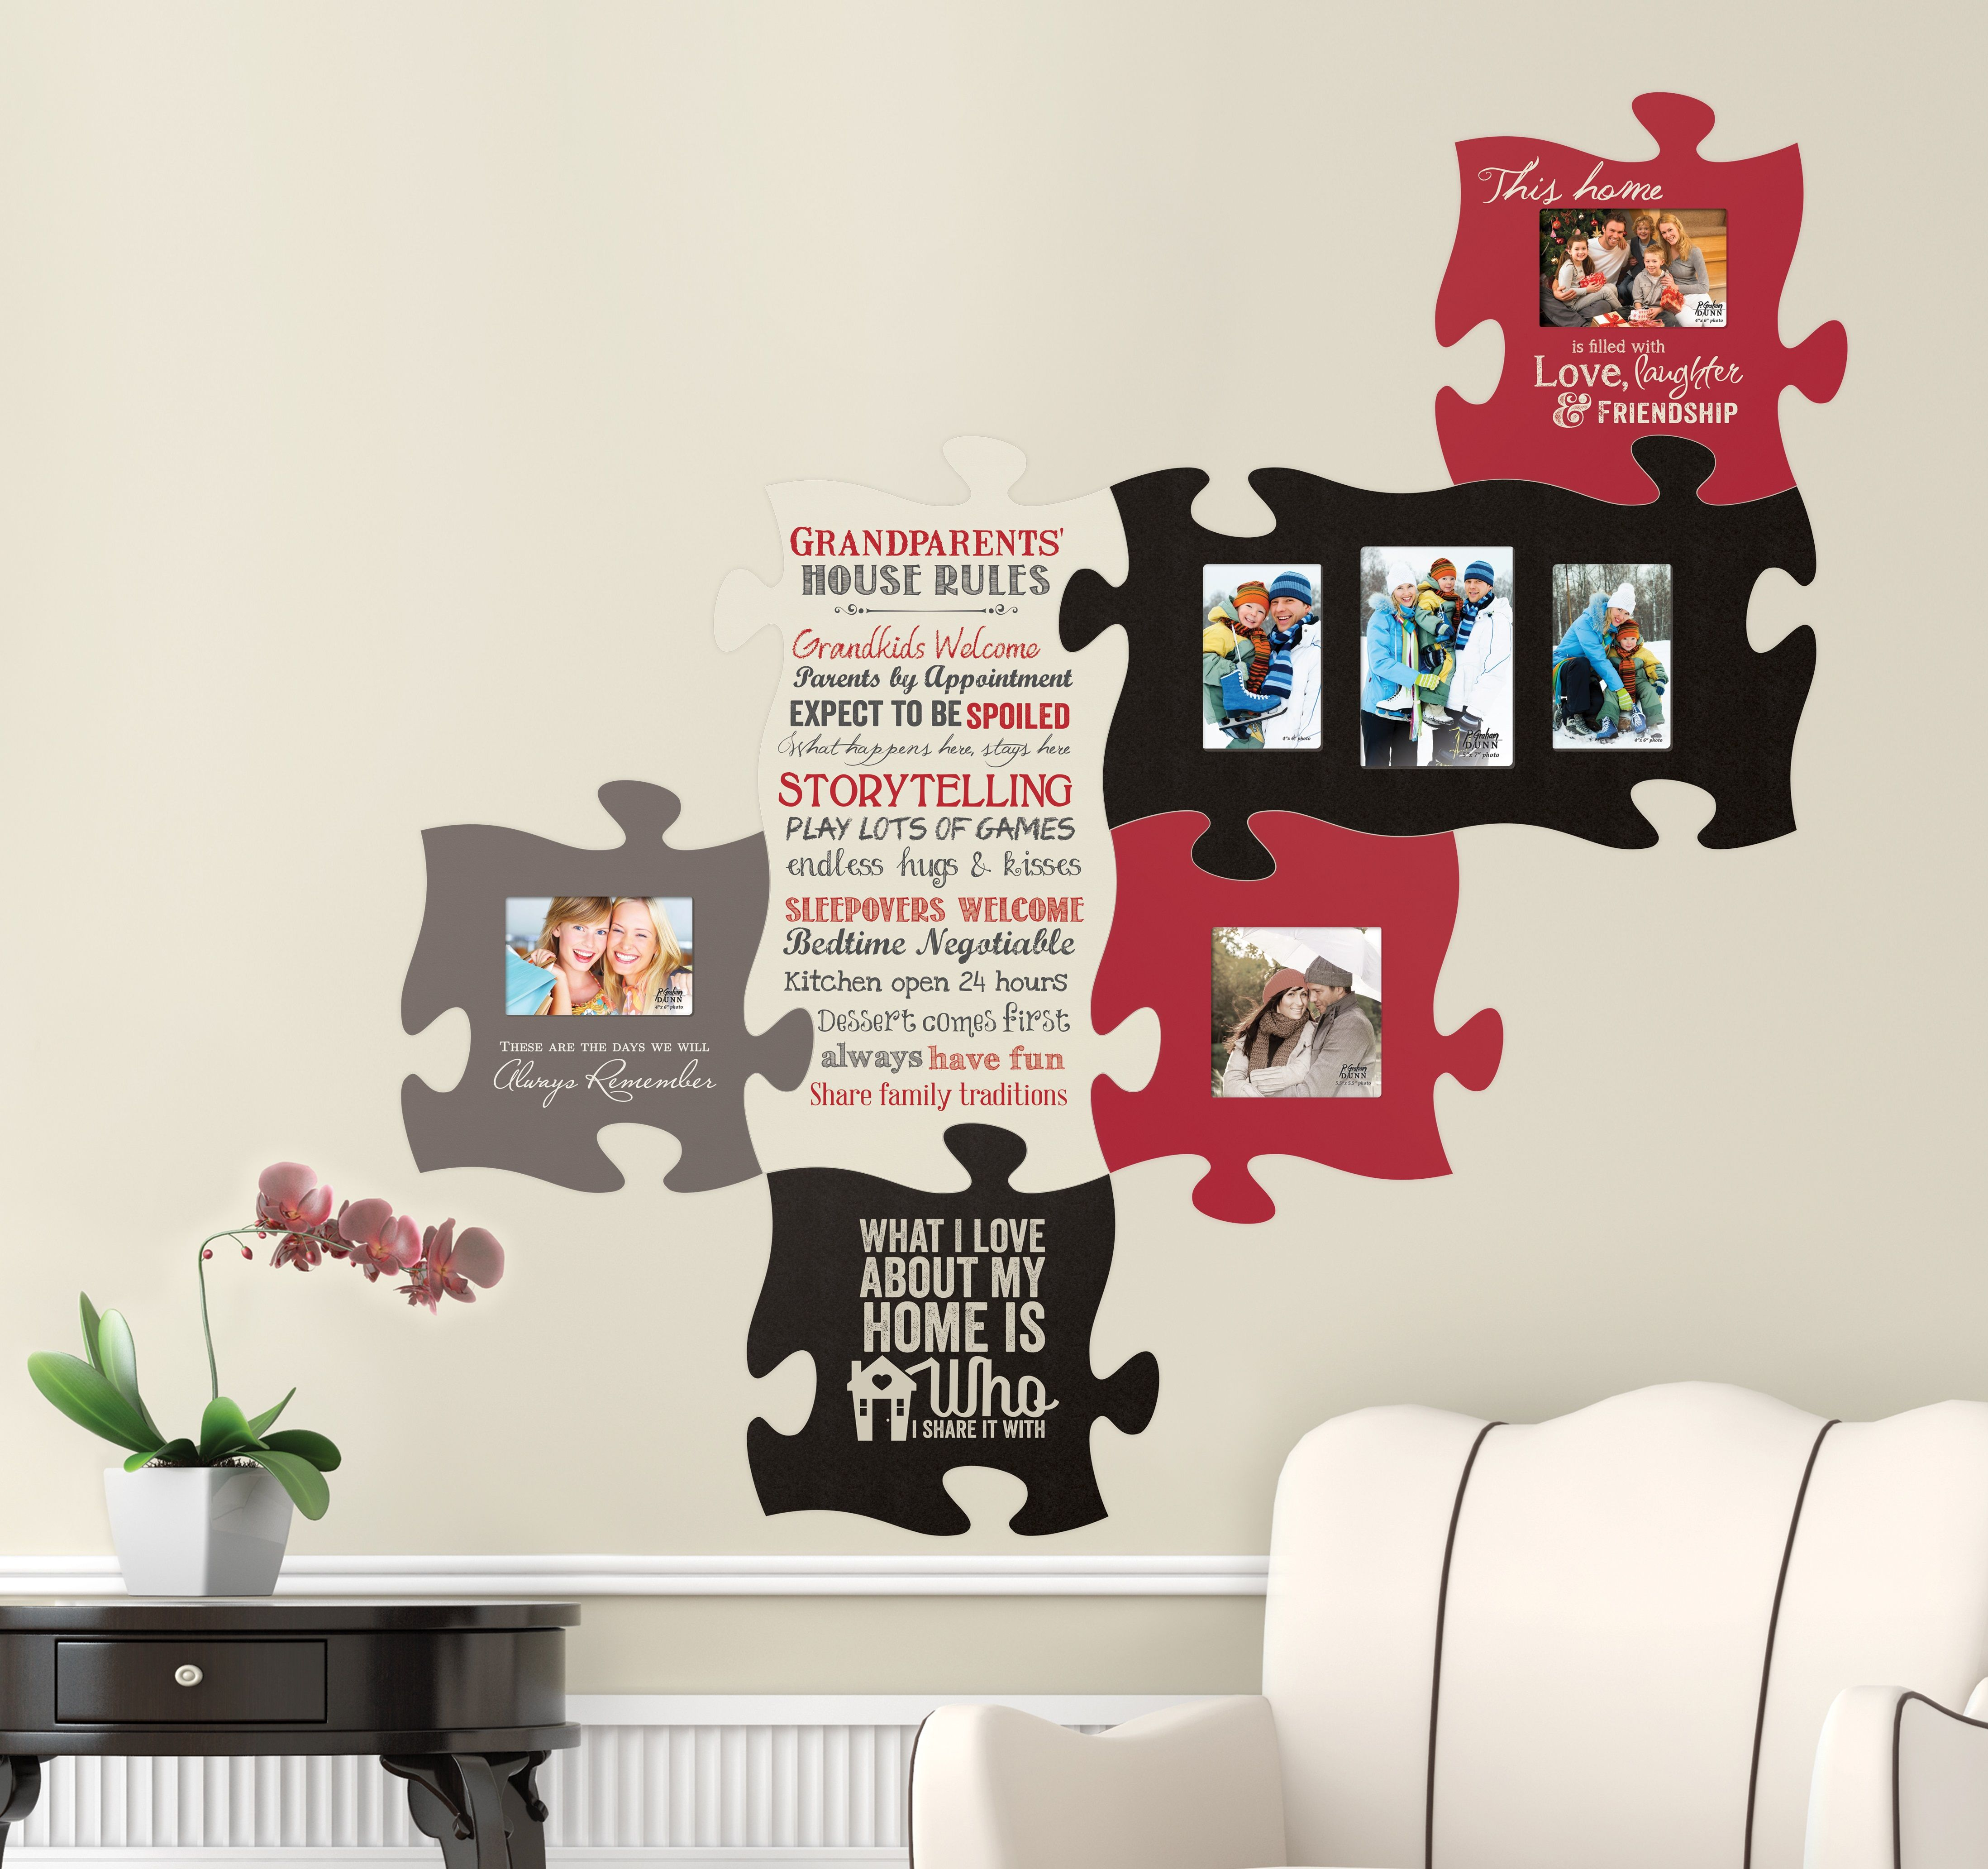 Puzzle Piece Your Family And Friends Together With This Wall Art There S Room For Everyone Plus Integrate Inspiratio Puzzle Frame Wall Frames Puzzle Pieces